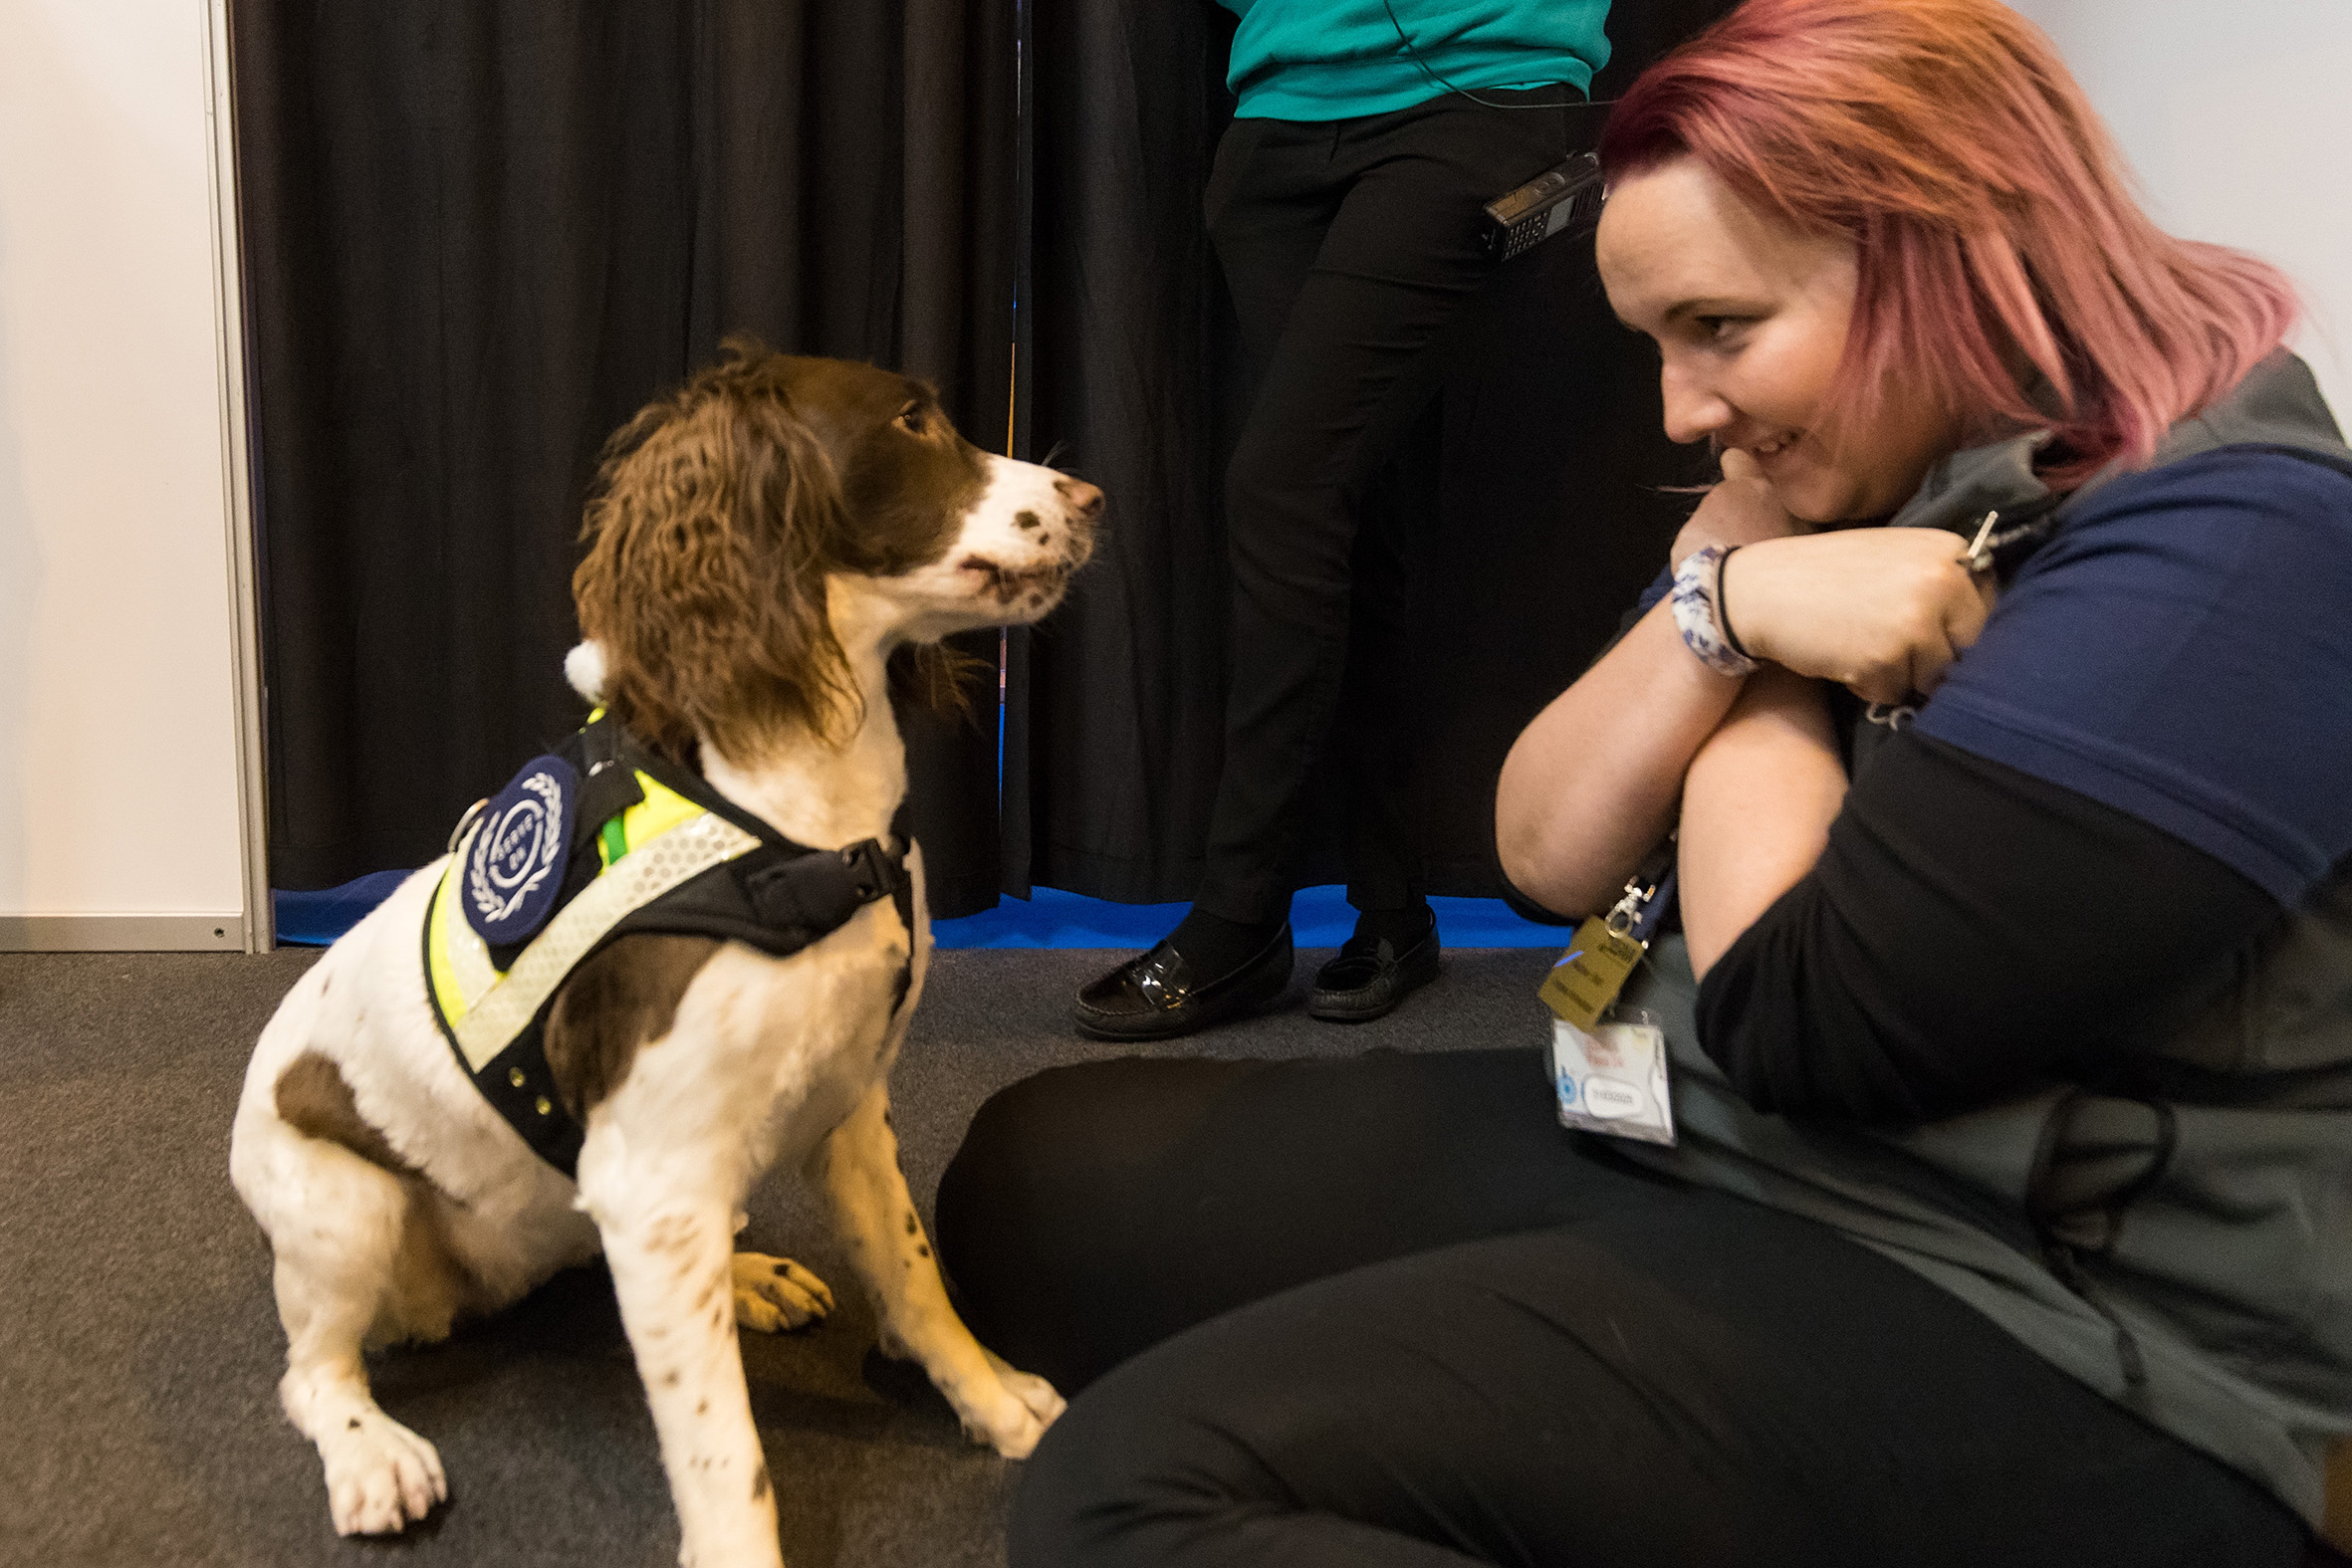 Serve On Search And Rescue Springer Spaniel Molly captivated guests at the BSAVA Congress for veterinary professionals in Birmingham.Picture by Paul Clarke Photography.